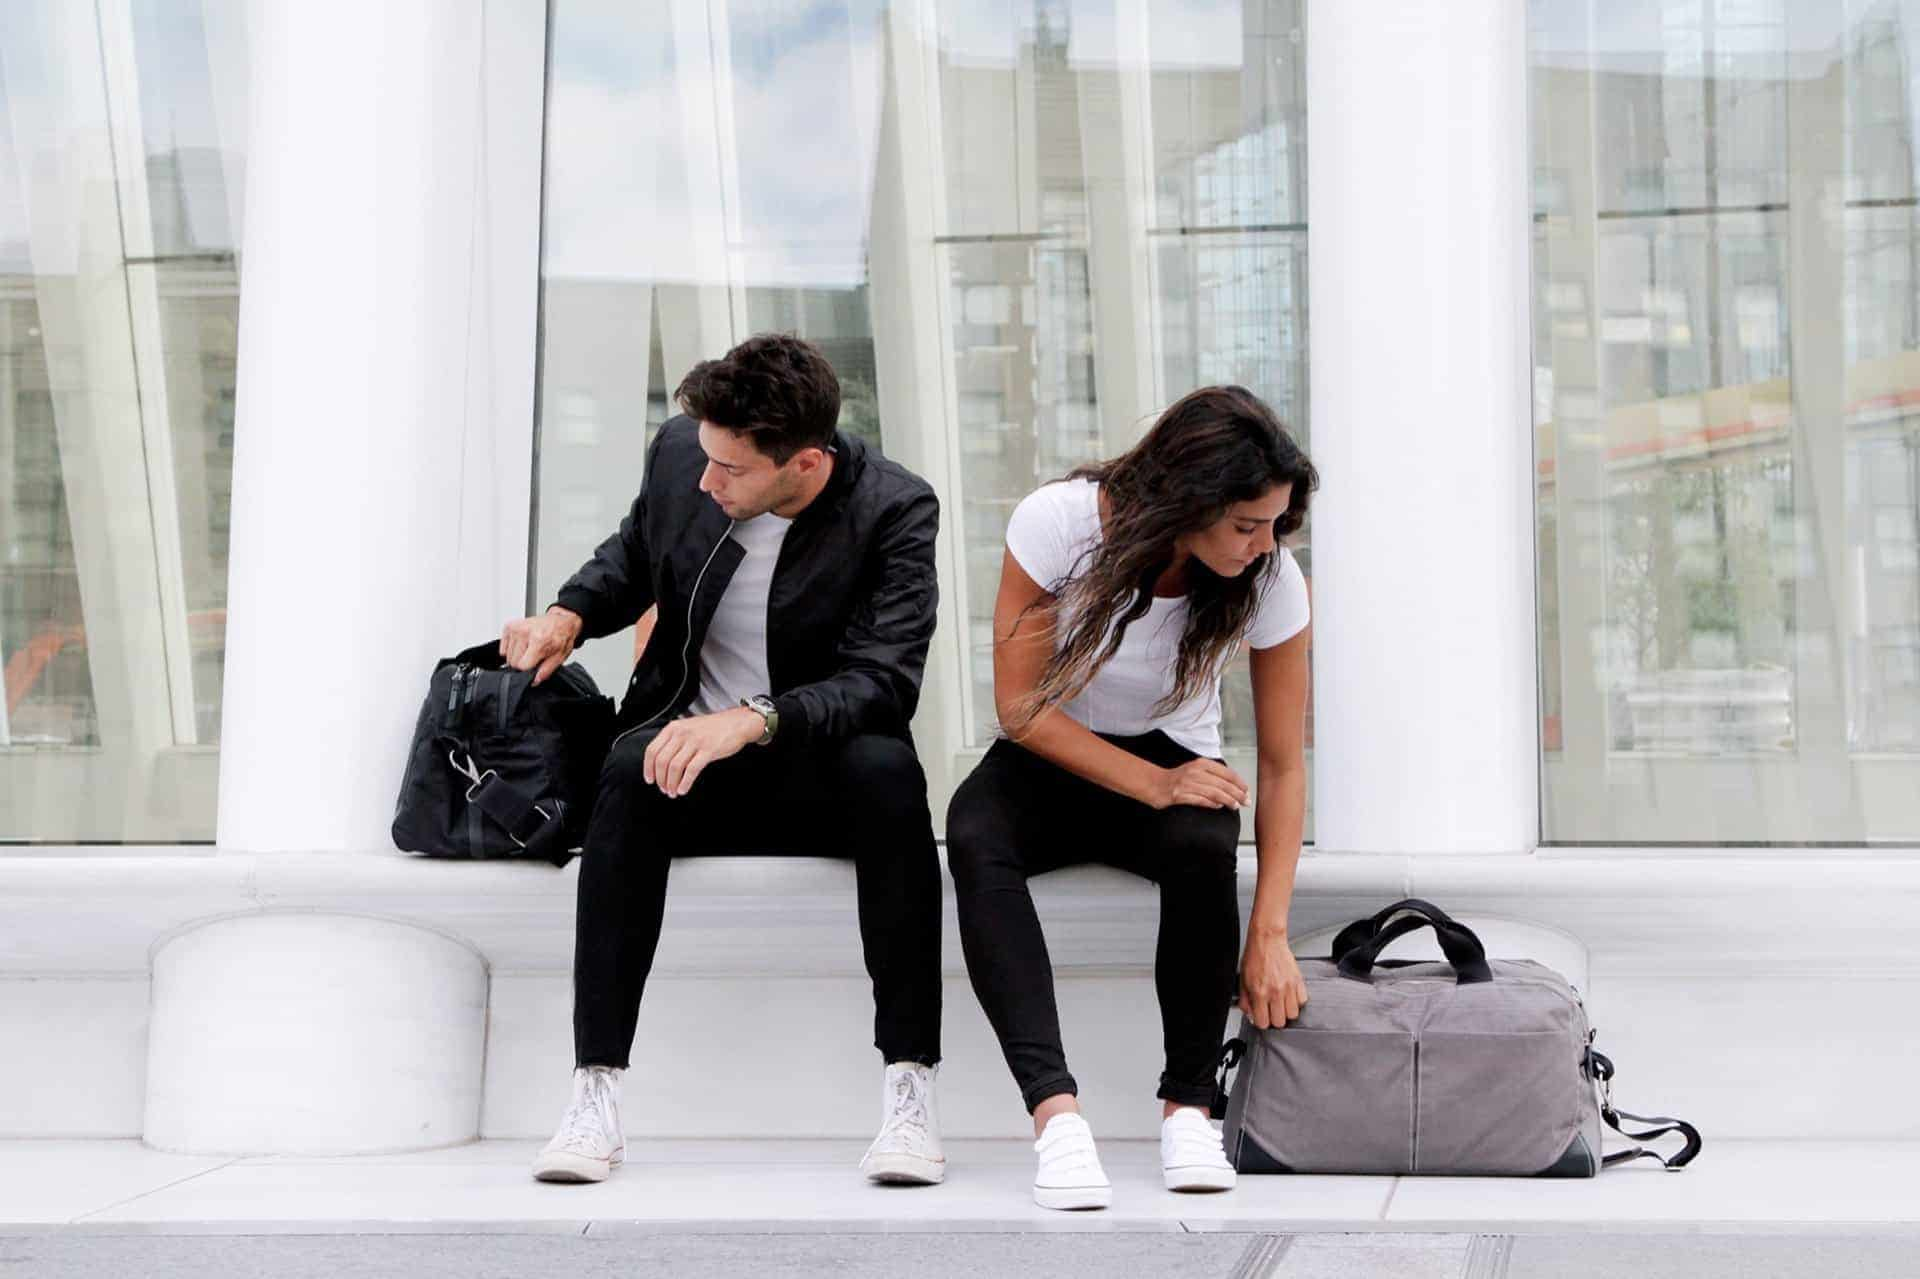 PAKT One - A Minimalist Travel Bag That Got Featured By Netflix For Its Own Reasons! - 4